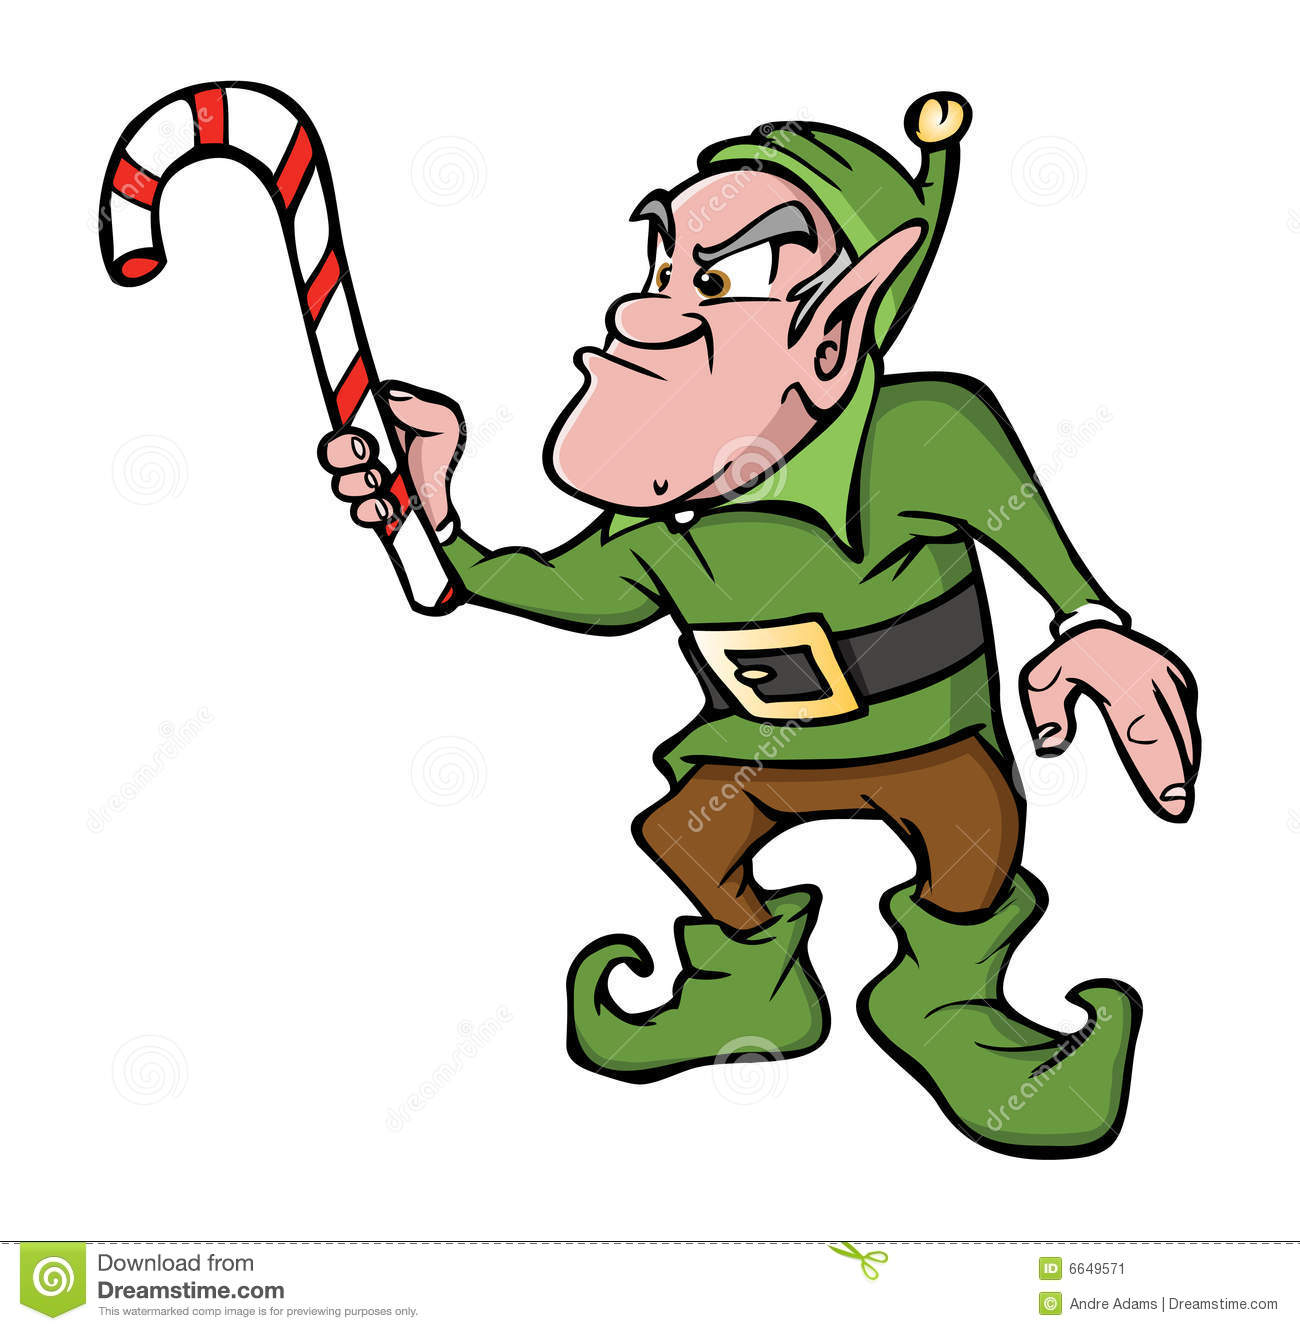 Elf clipart animated Clipart Angry Animated Elf